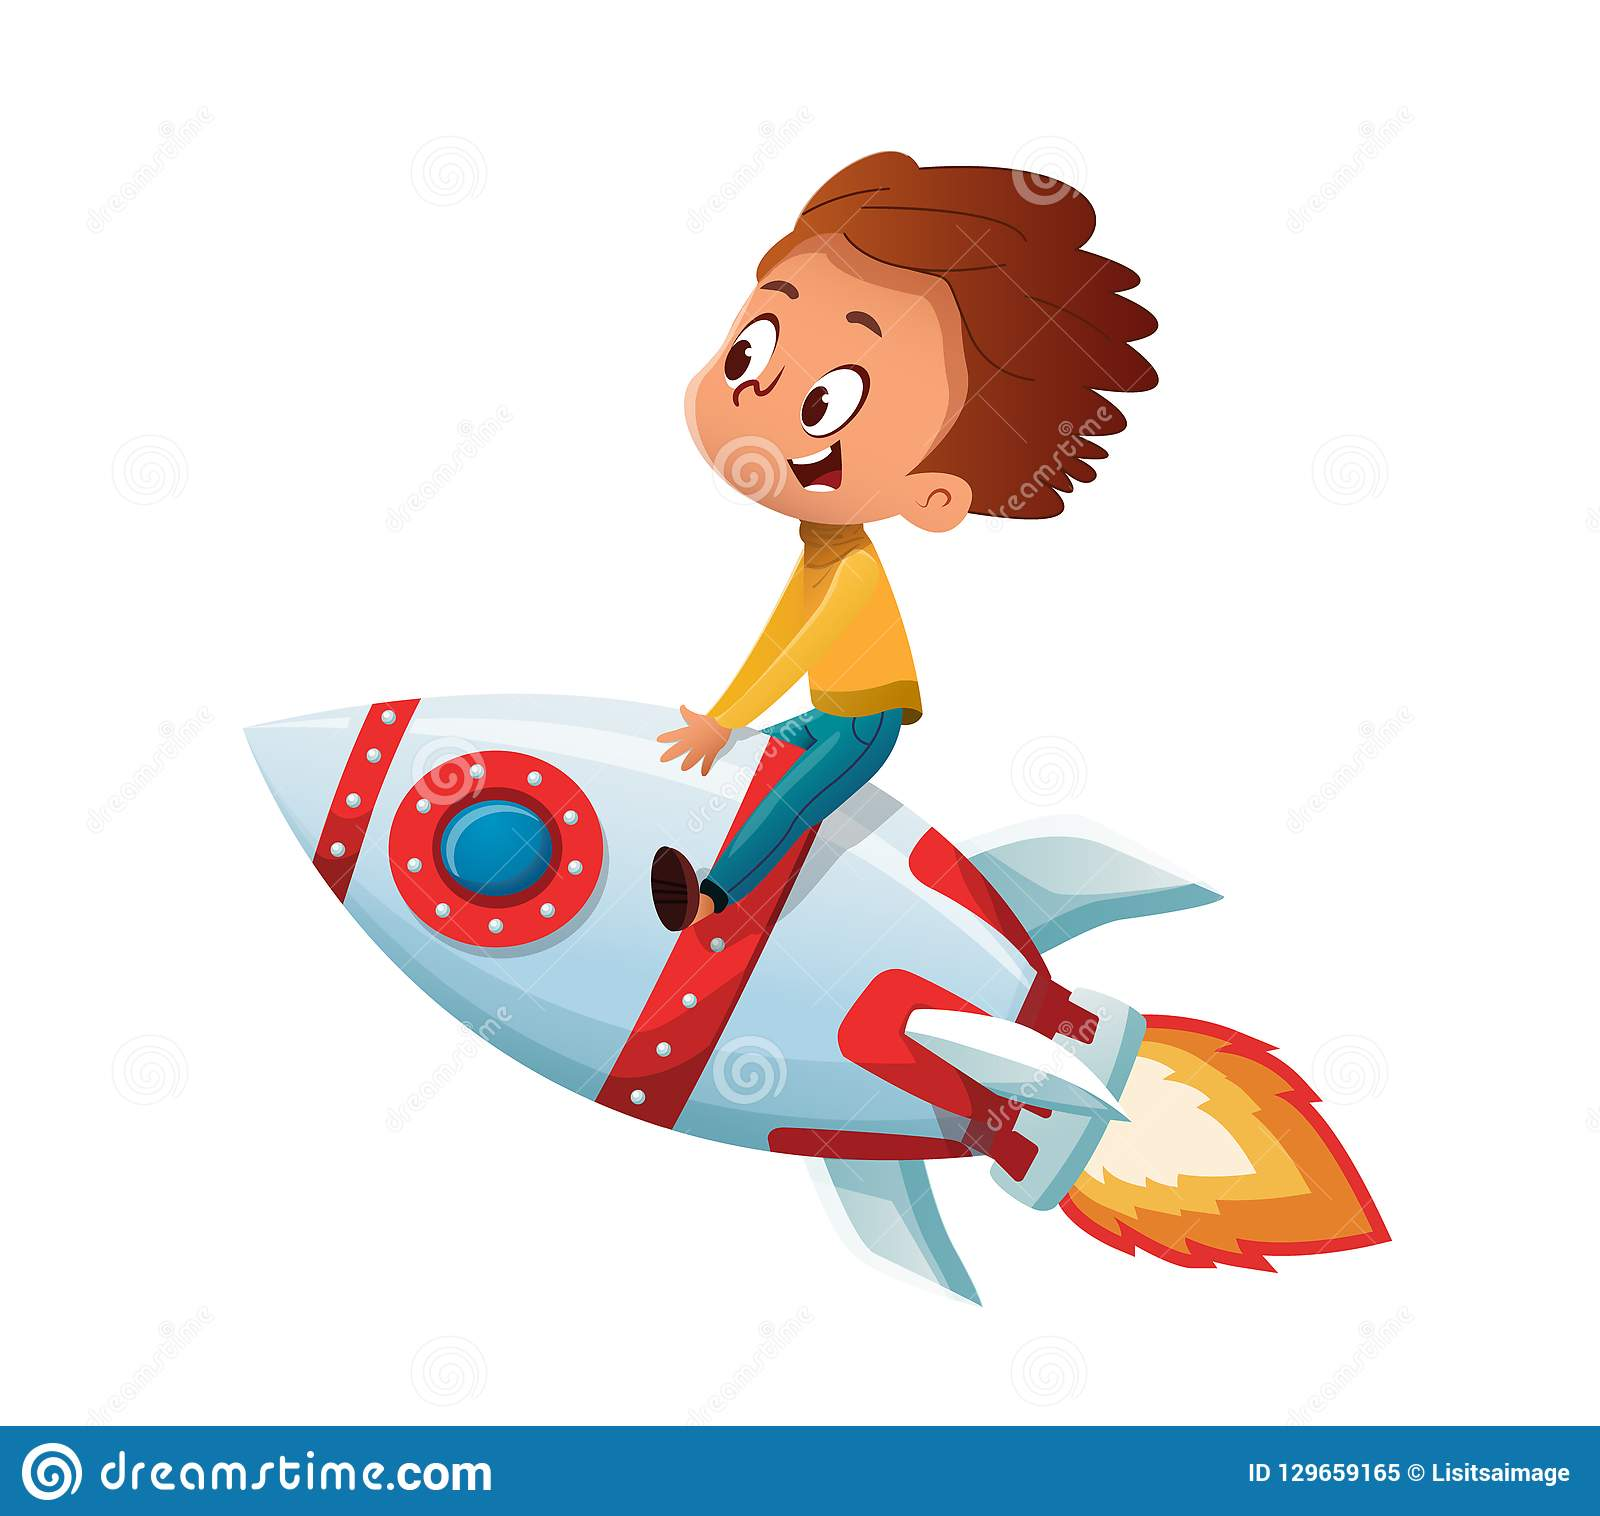 Happy Boy playing and imagine himself in space driving an toy space rocket. Vector cartoon illustration. Isolated